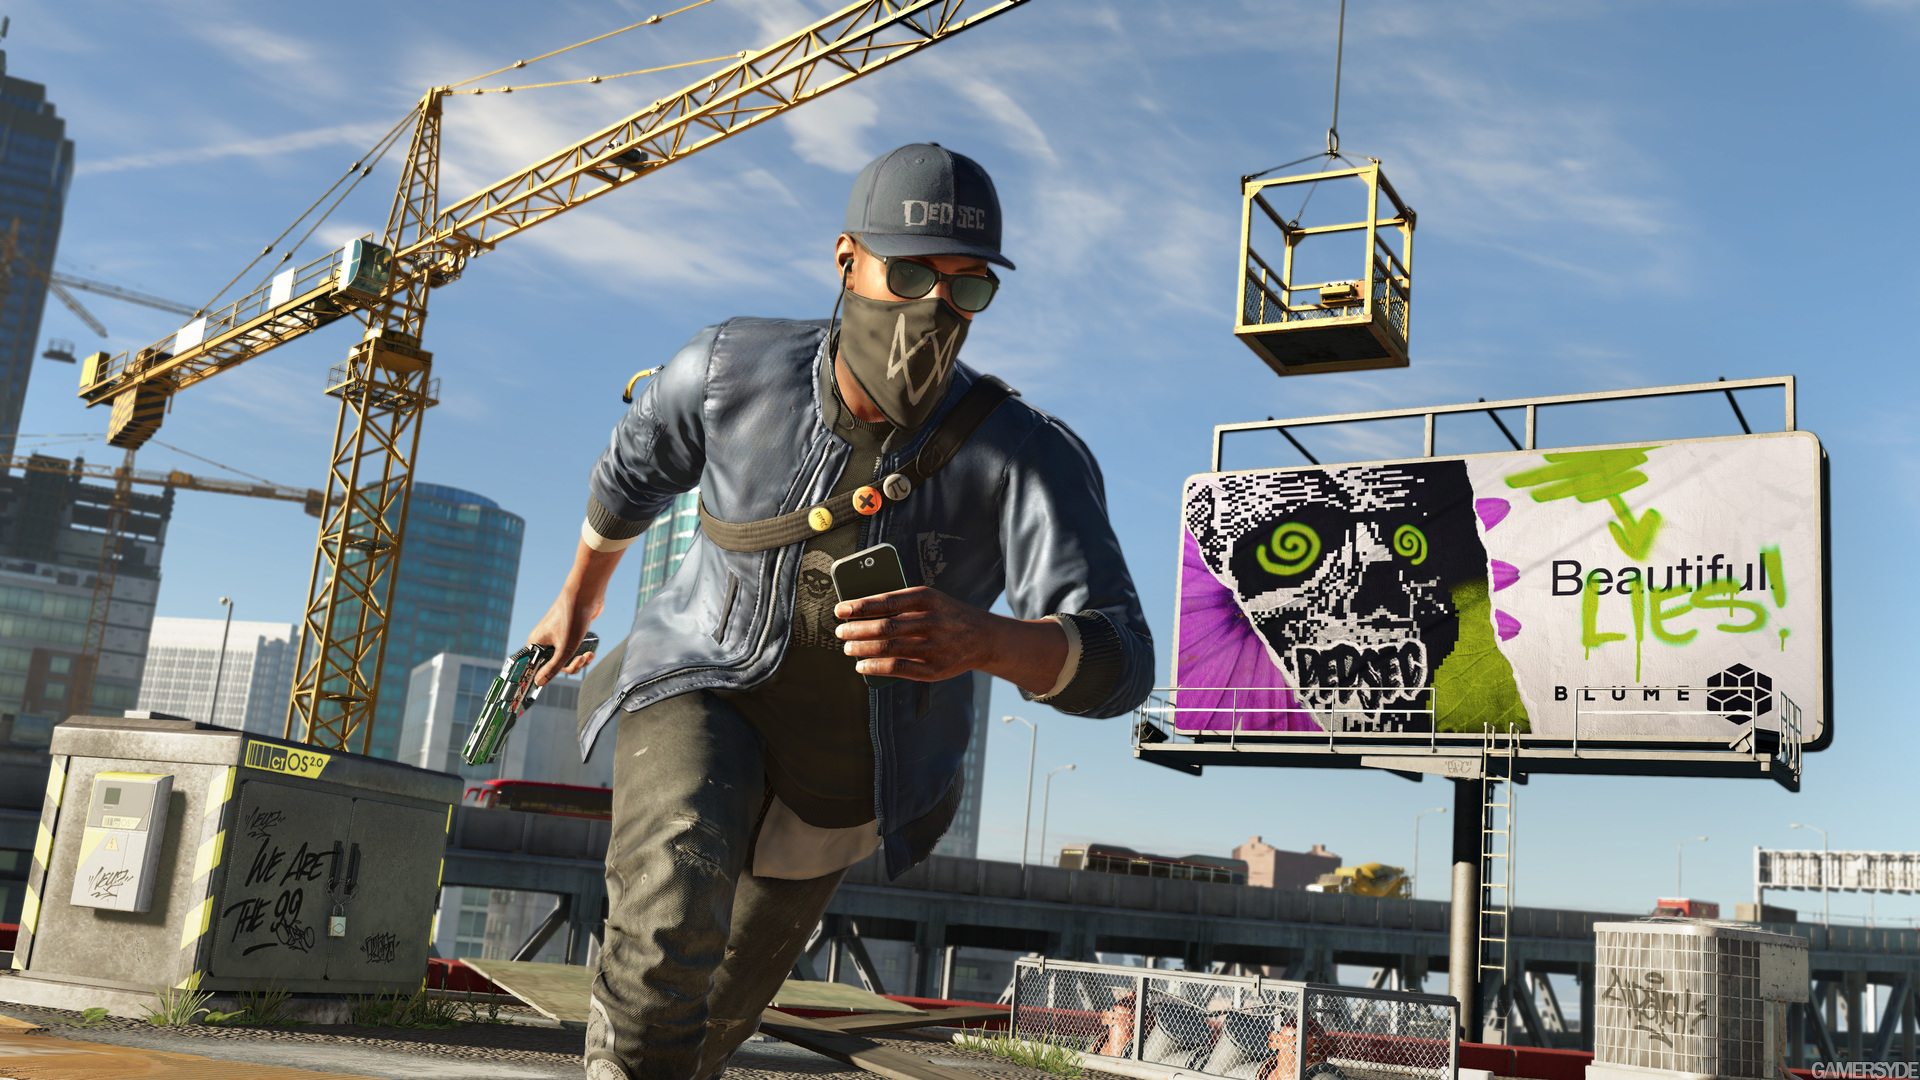 image_watch_dogs_2-31968-3615_0003